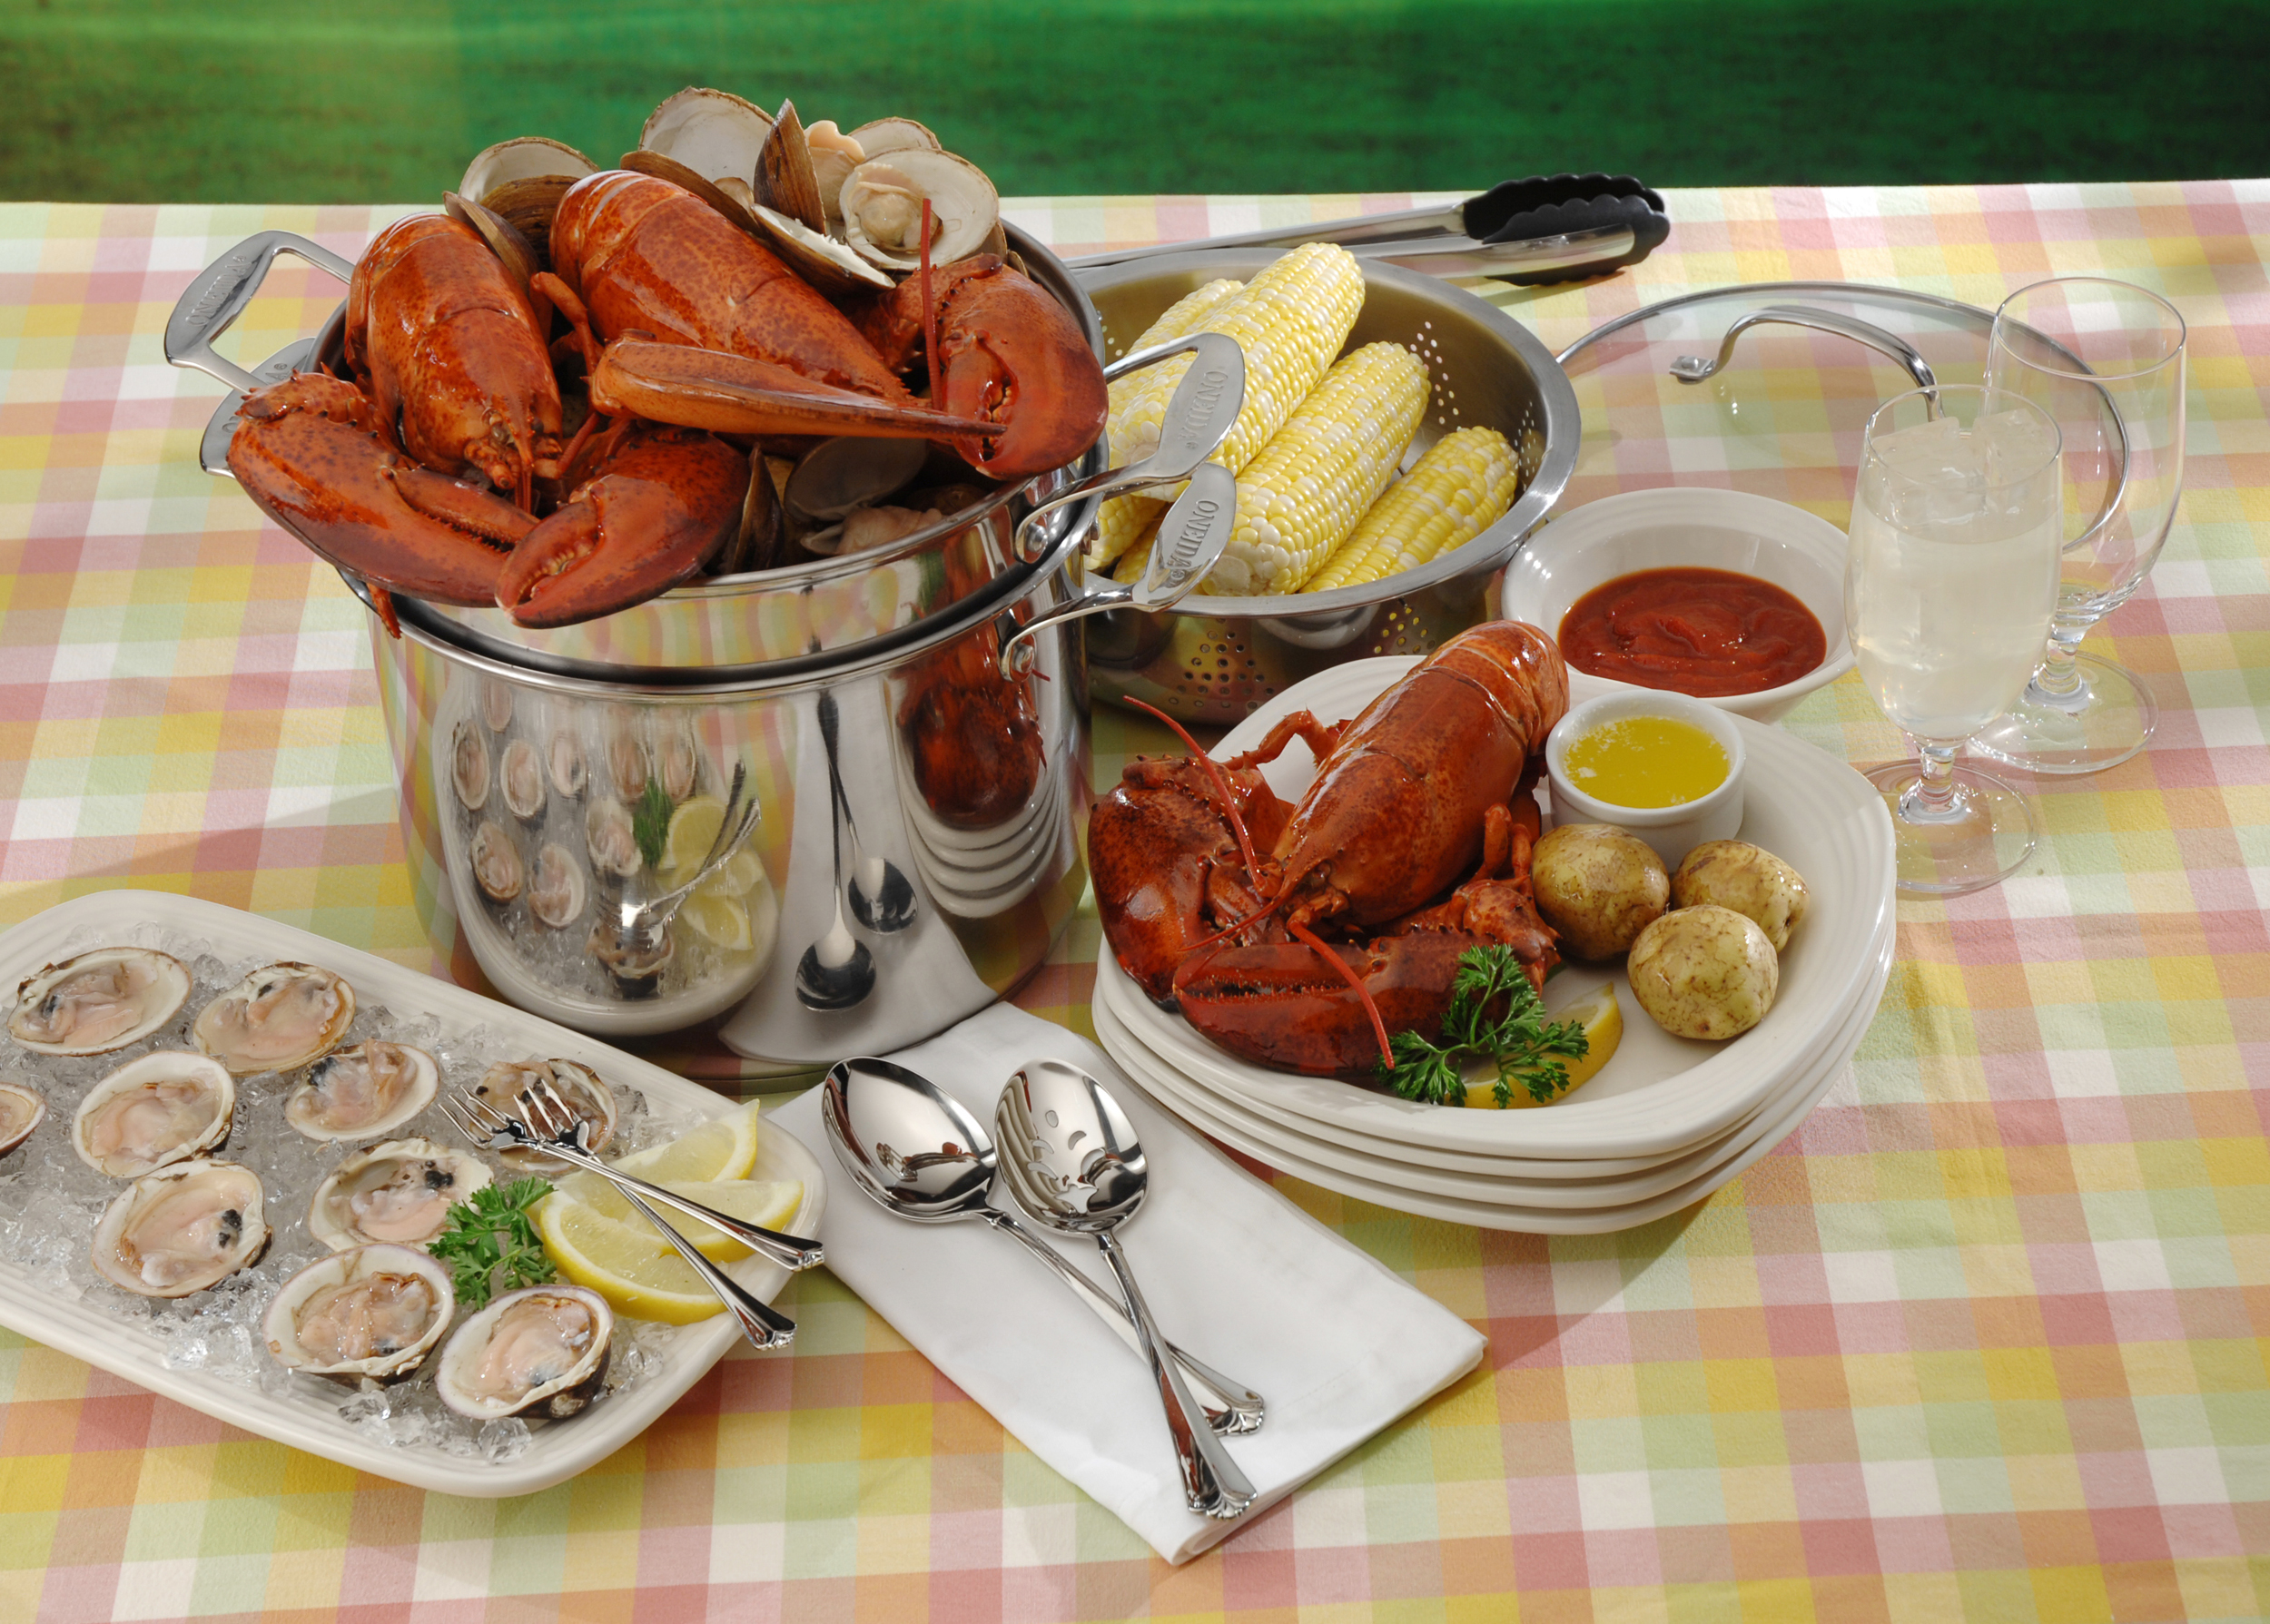 Festive seafood boil featured on Oneida Culinaria dinnerware with Juilliard flatware and stainless multi cooker.Seafood picnic ... & Ten Tips on Eco Friendly Dining and Entertaining from Oneida Ltd.